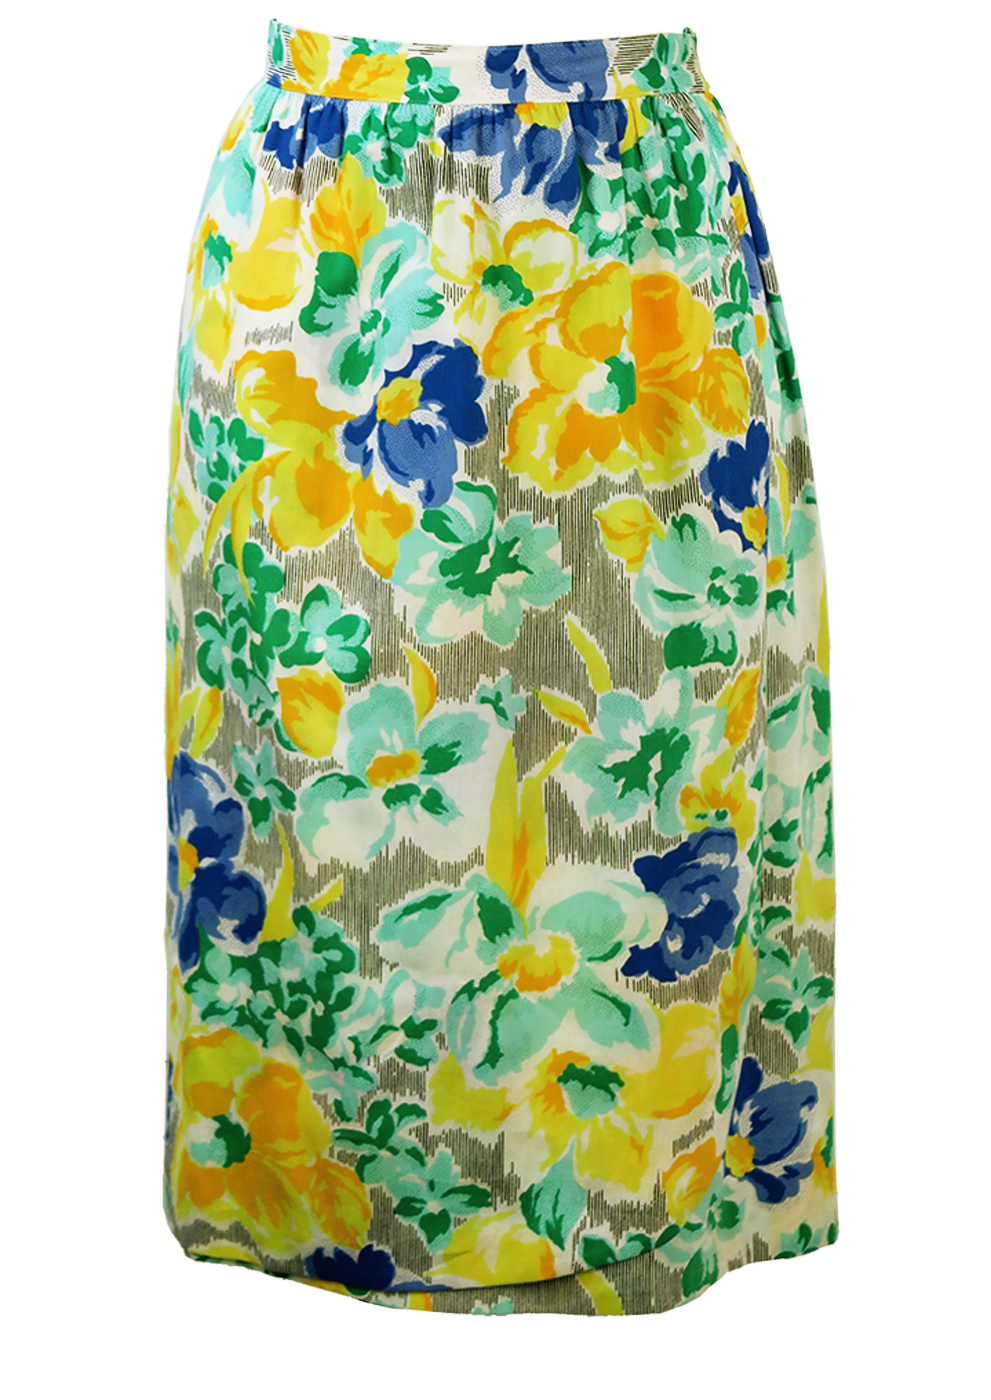 59b0a75e6d Midi Black & White Stripe Skirt with Yellow, Blue & Mint Floral Pattern - S